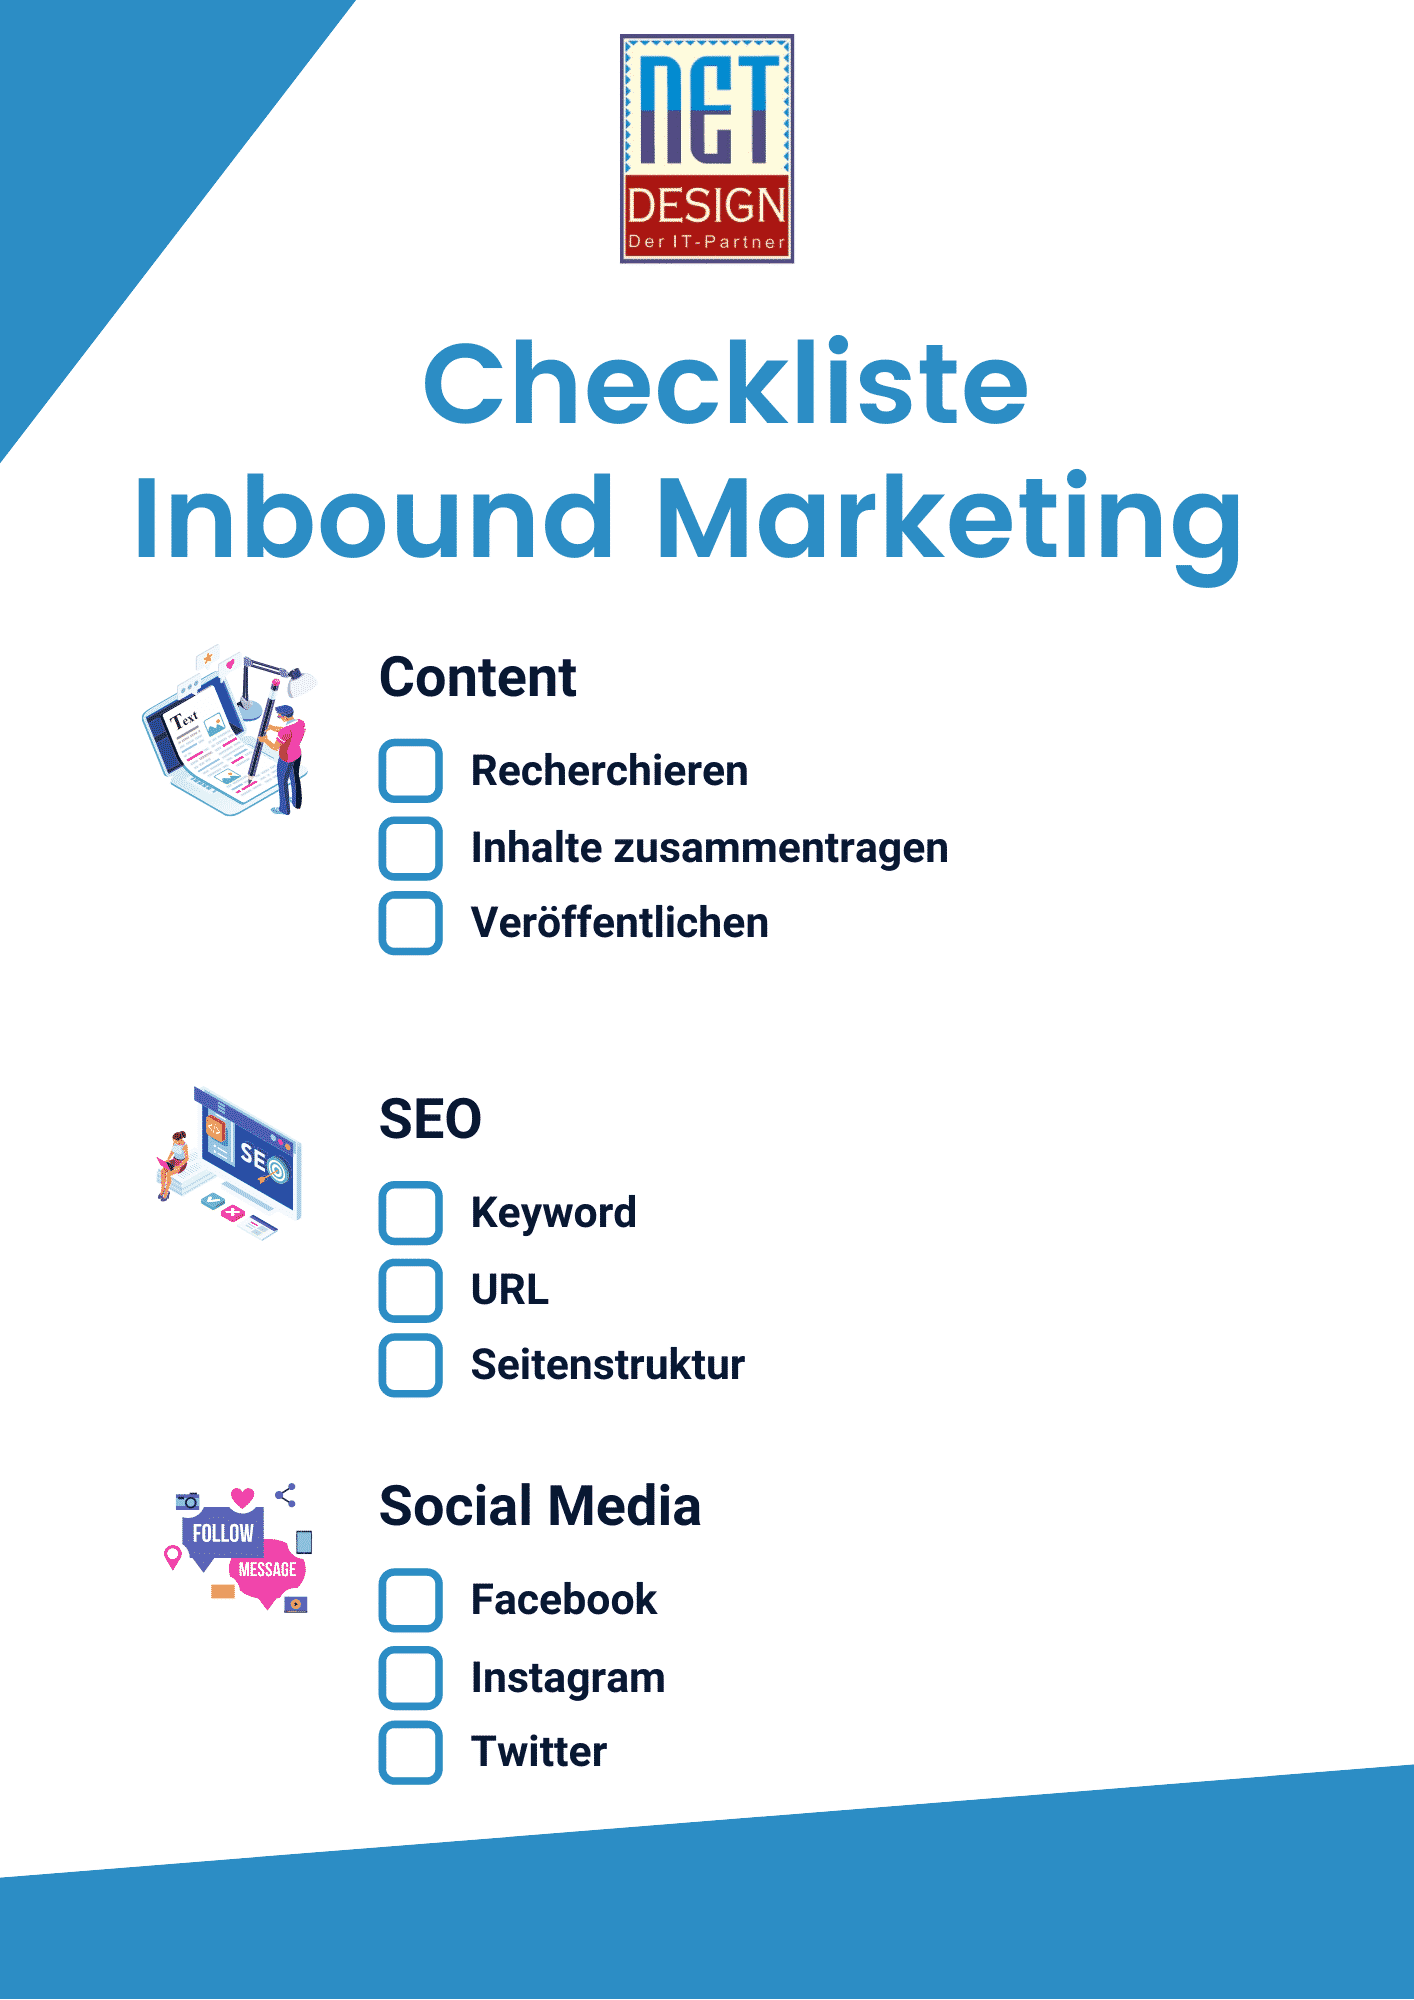 Inbound Marketing Checkliste